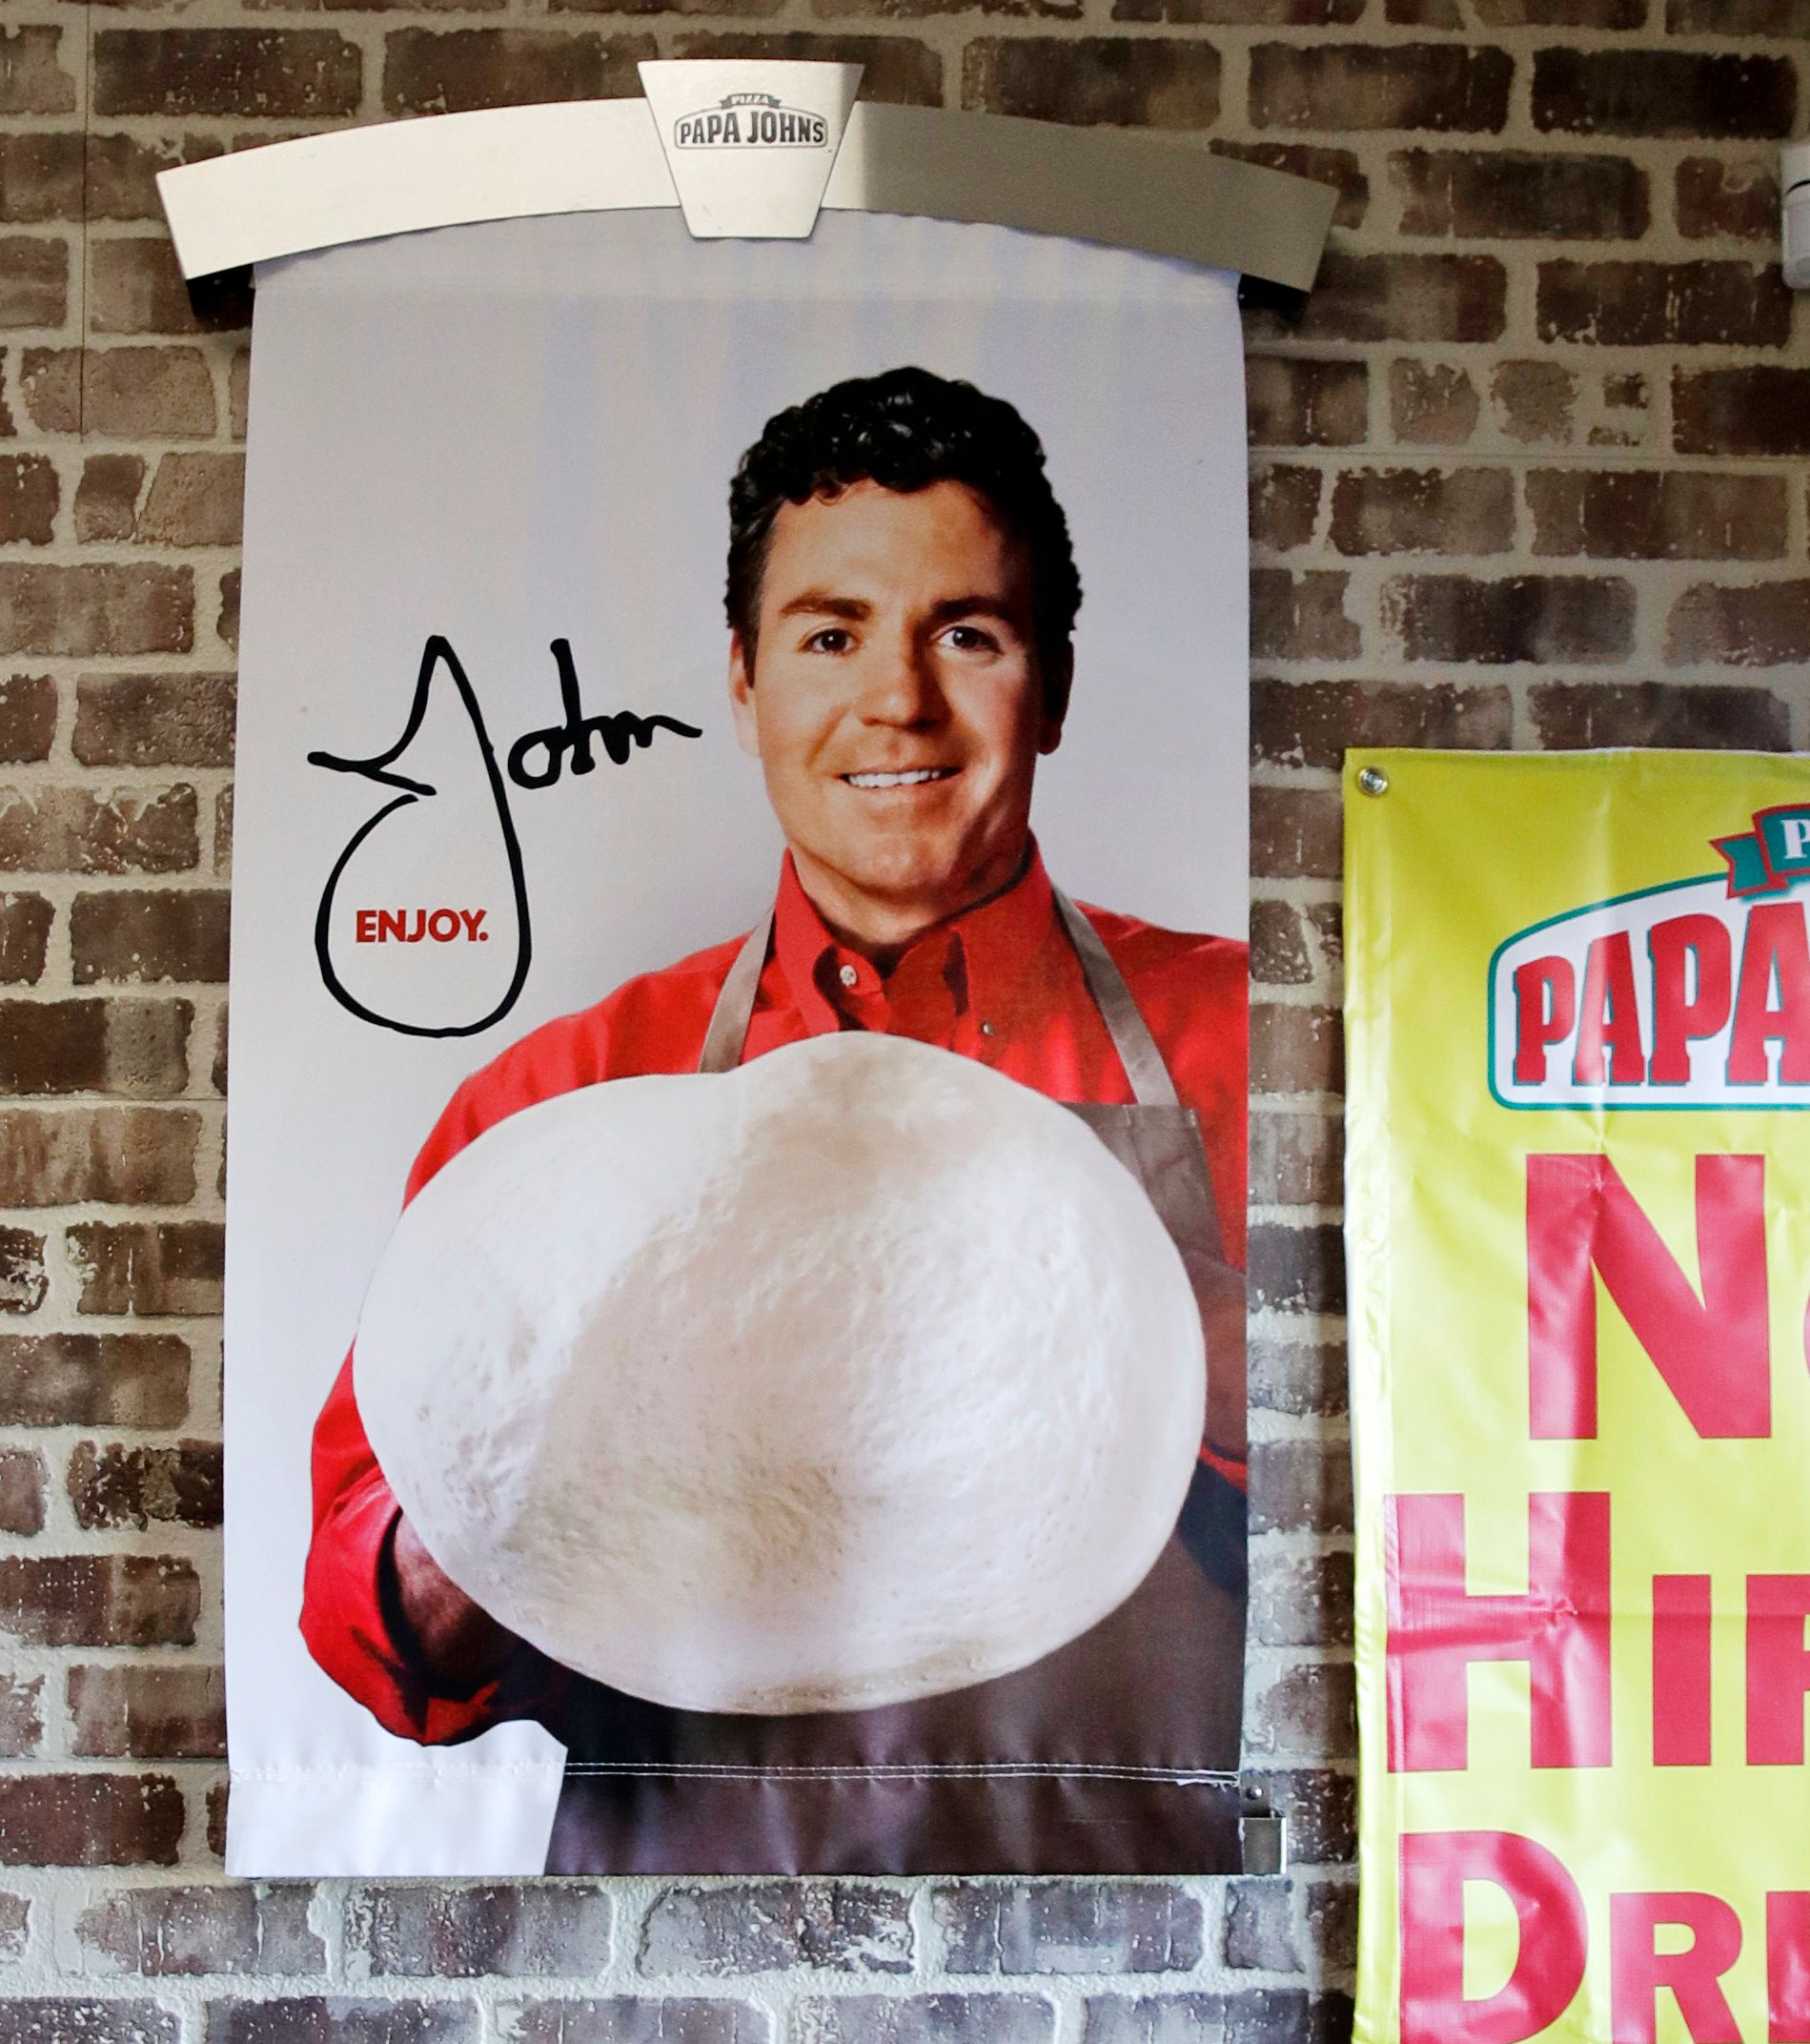 Papa John's to pull founder John Schnatter's image from marketing materials